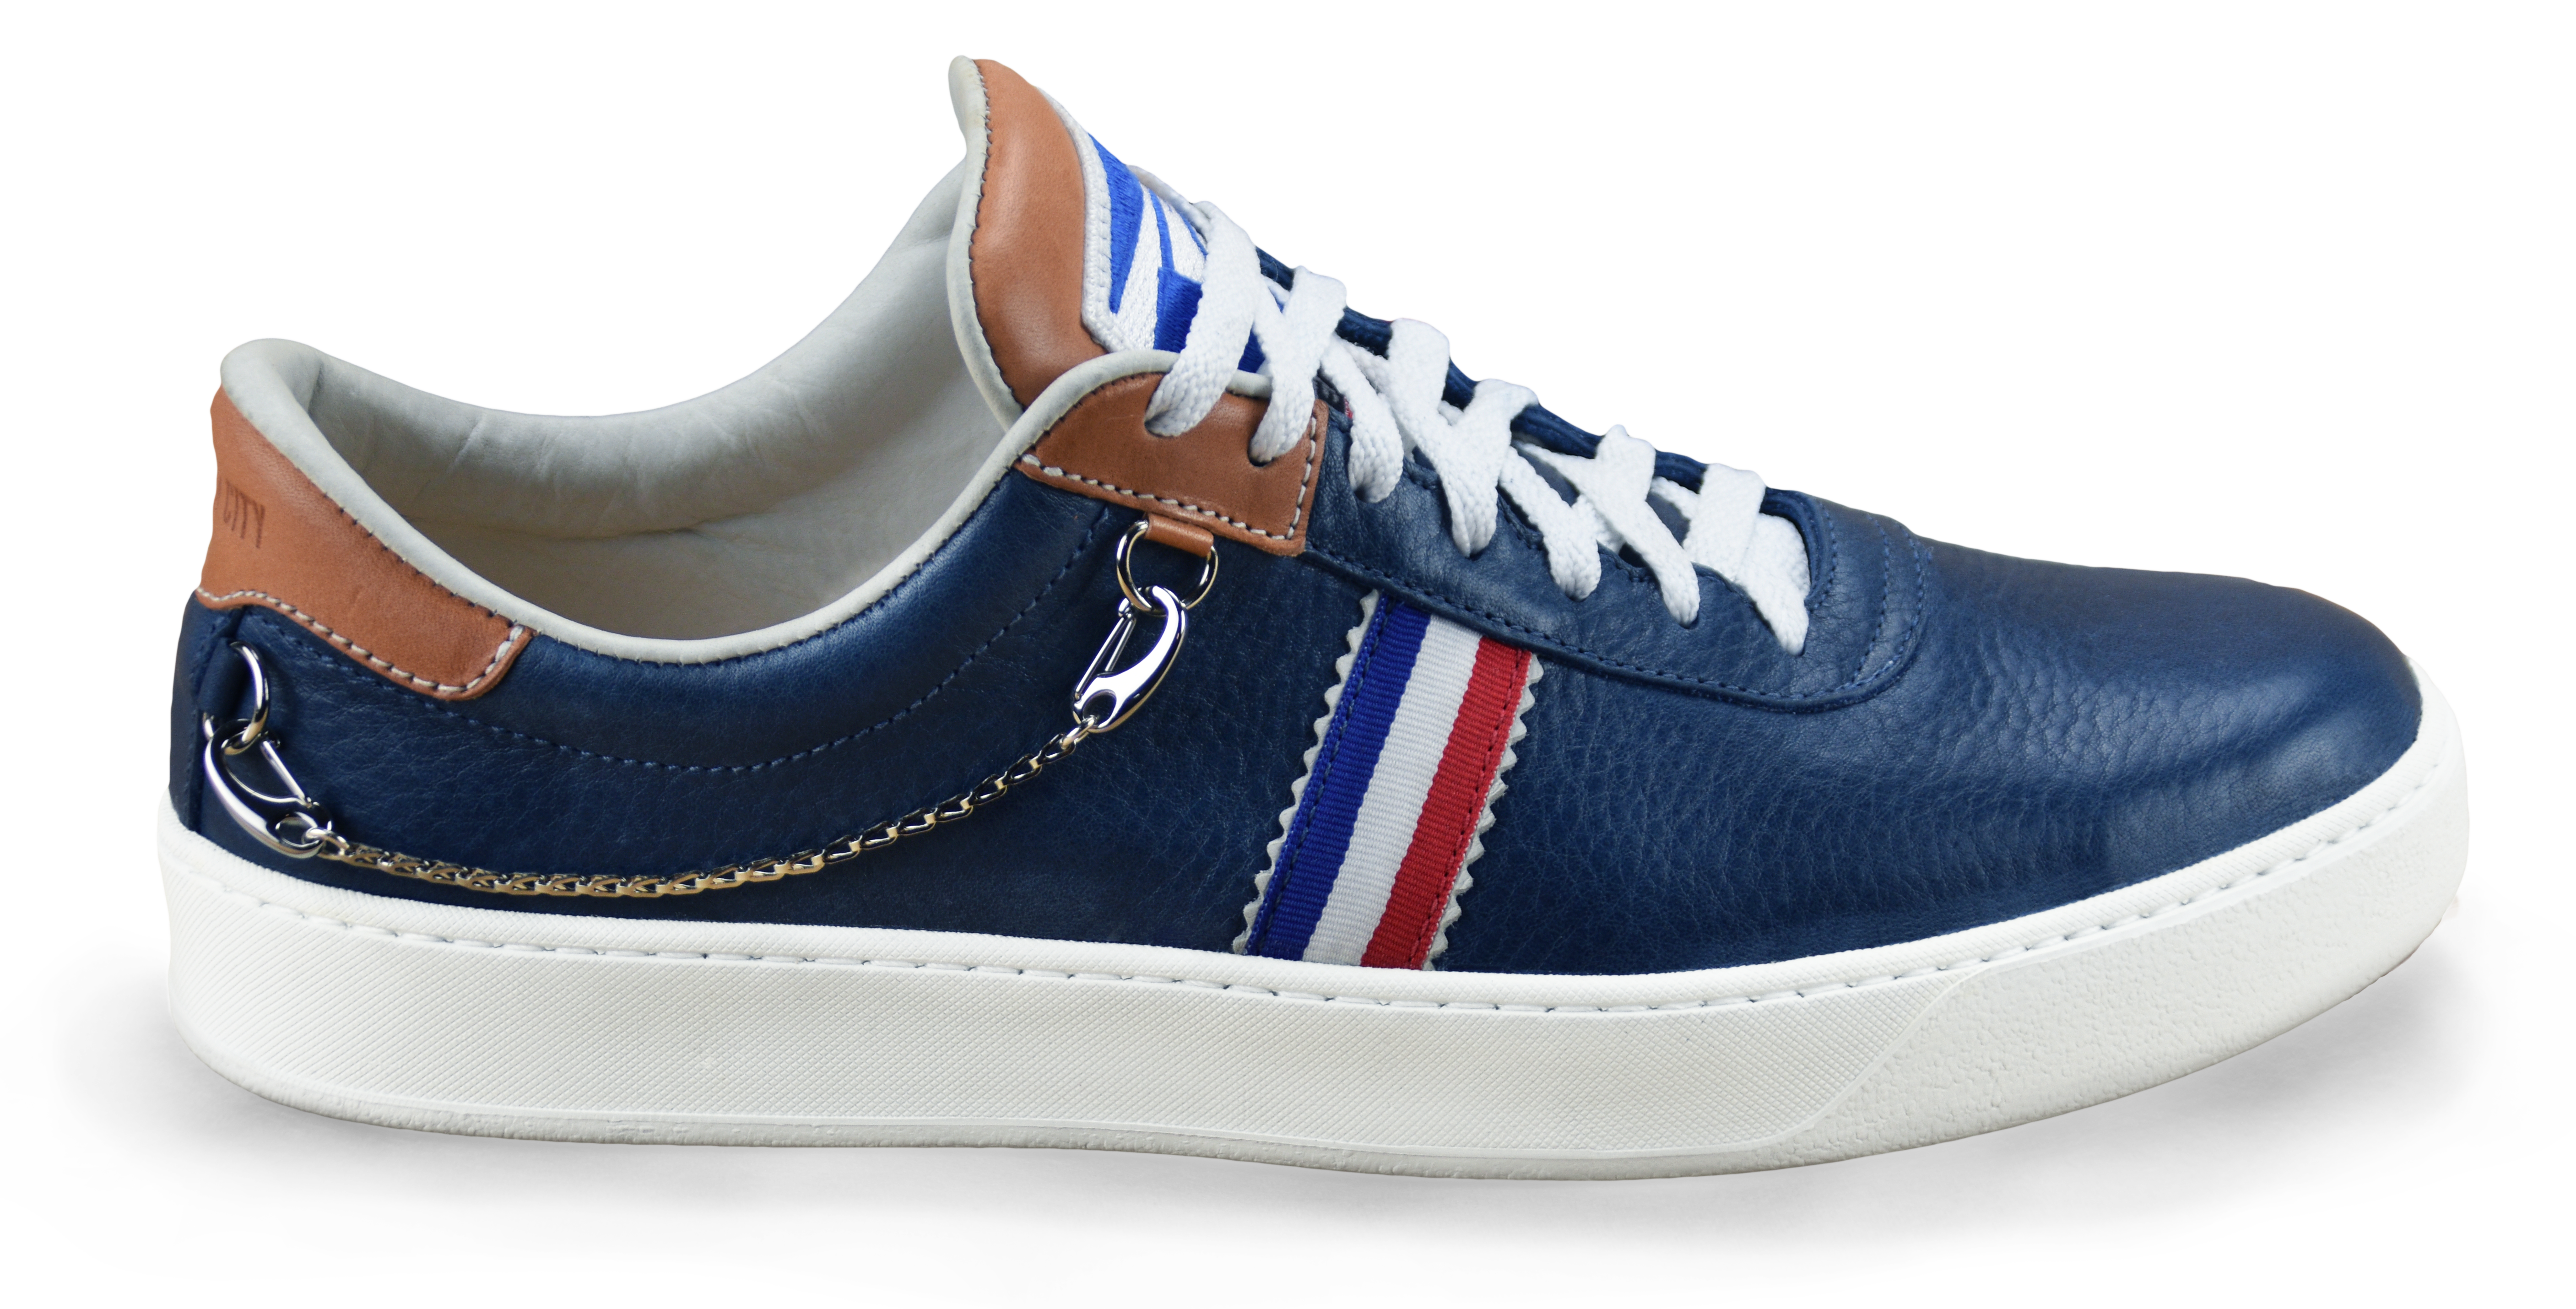 Hardwick Low - USPS Tribute - One-Off Pair